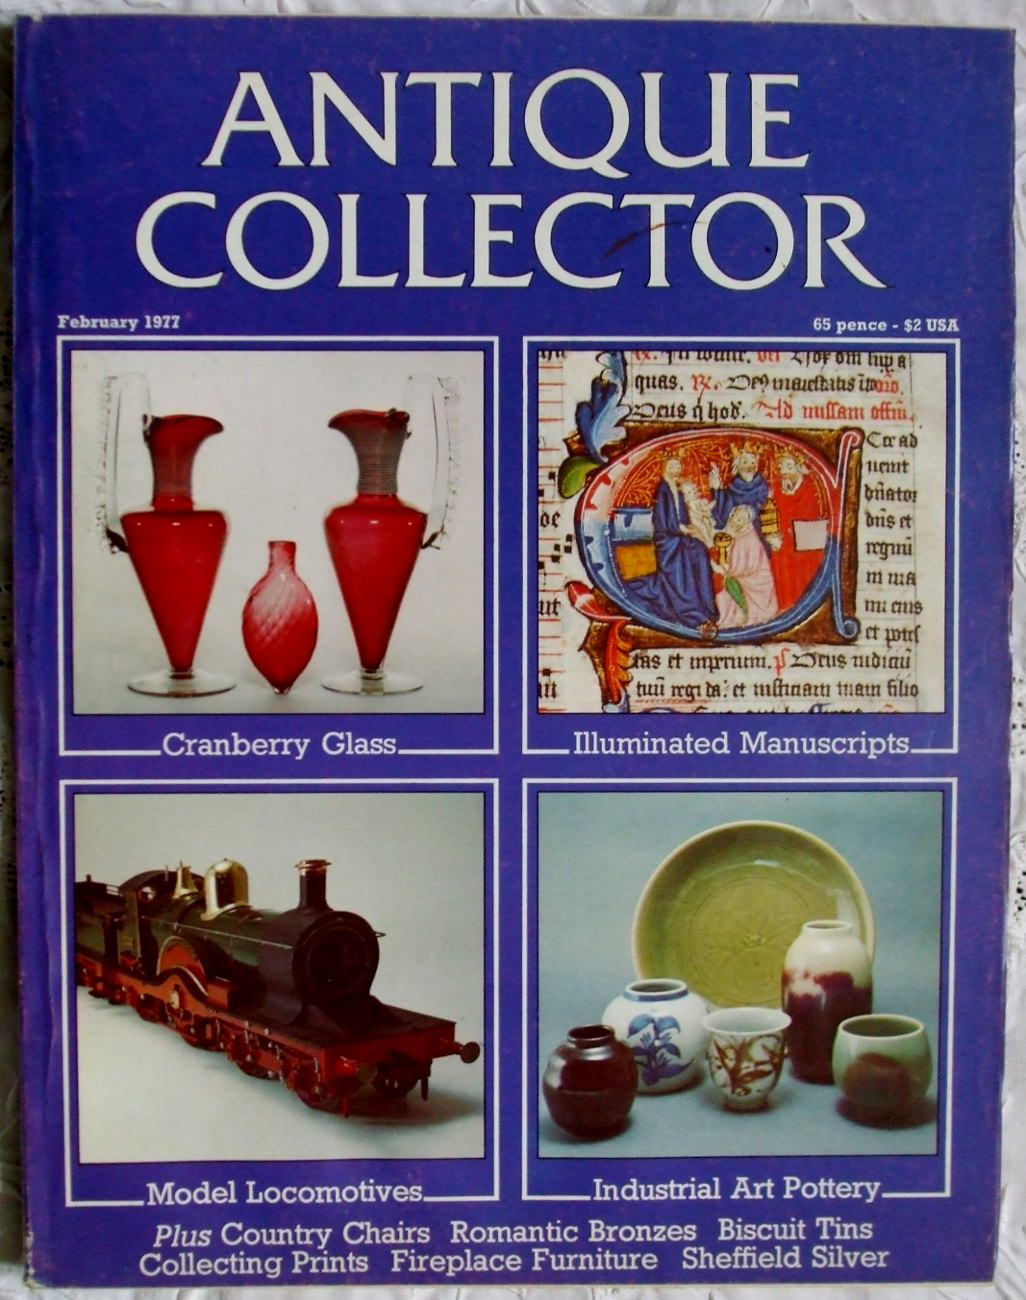 Antique Collector February 1977